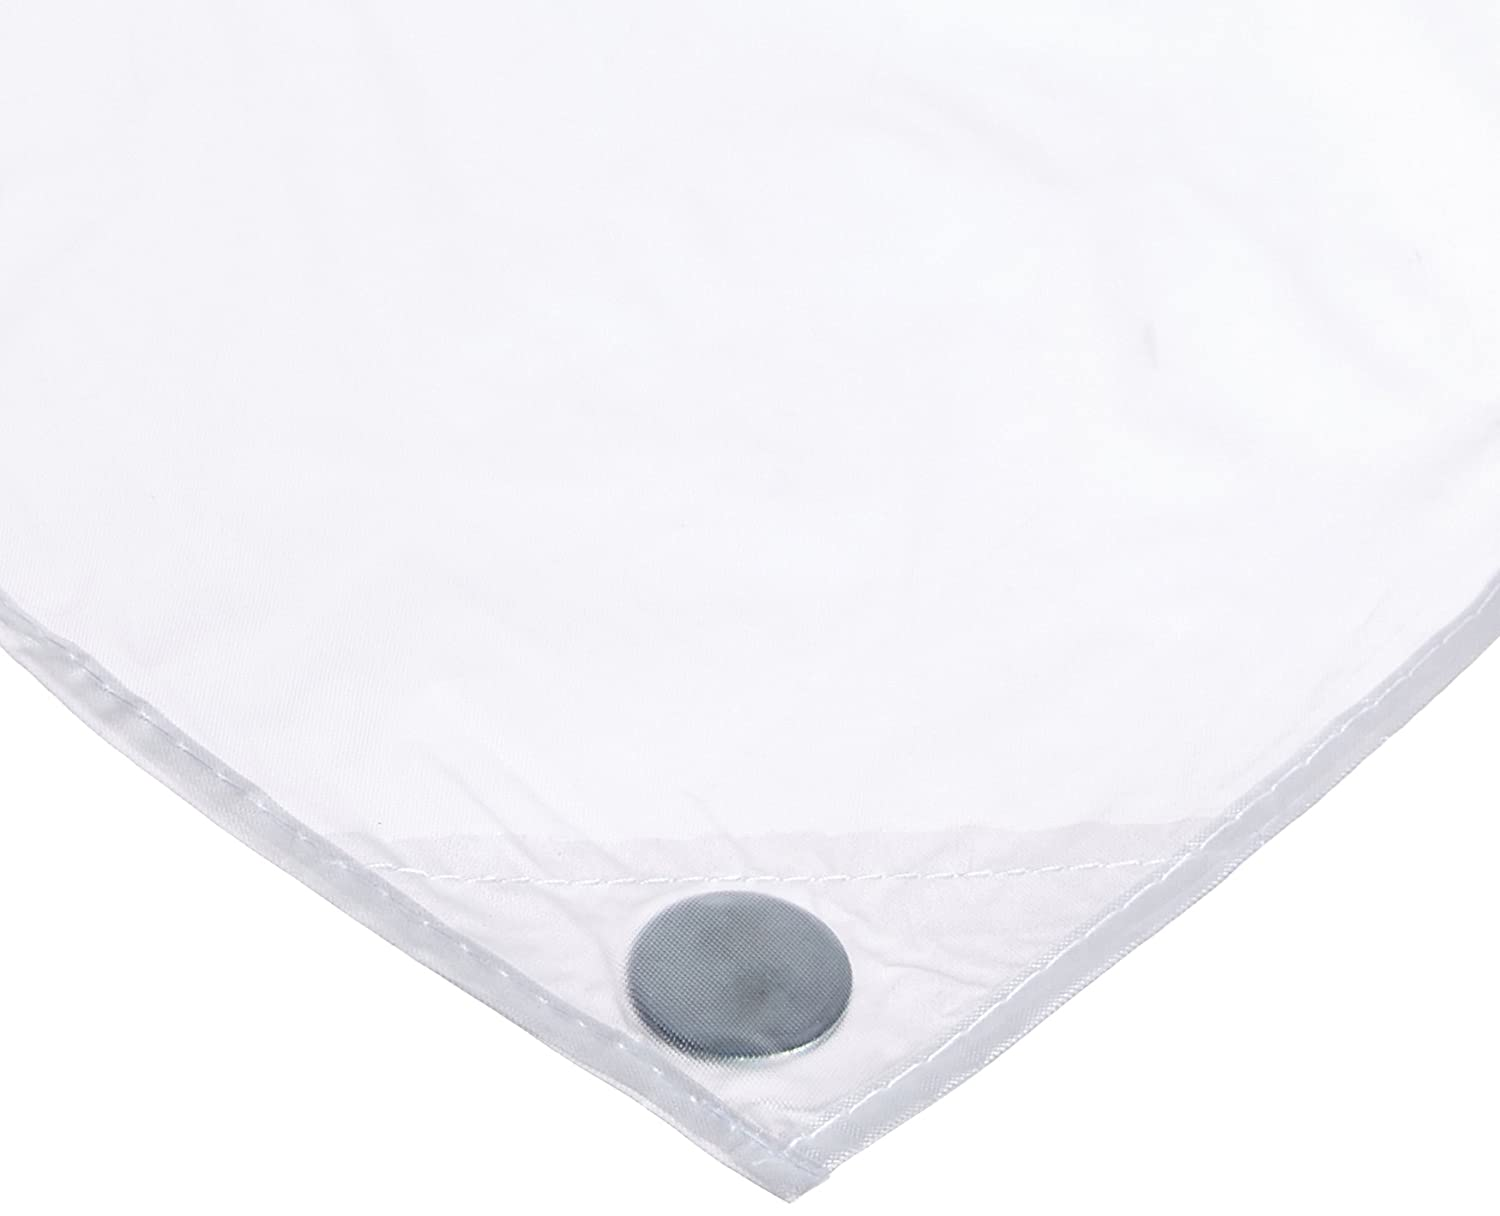 9-Feet Pro Series TBC-9C Plastic Pool Table Cover Clear